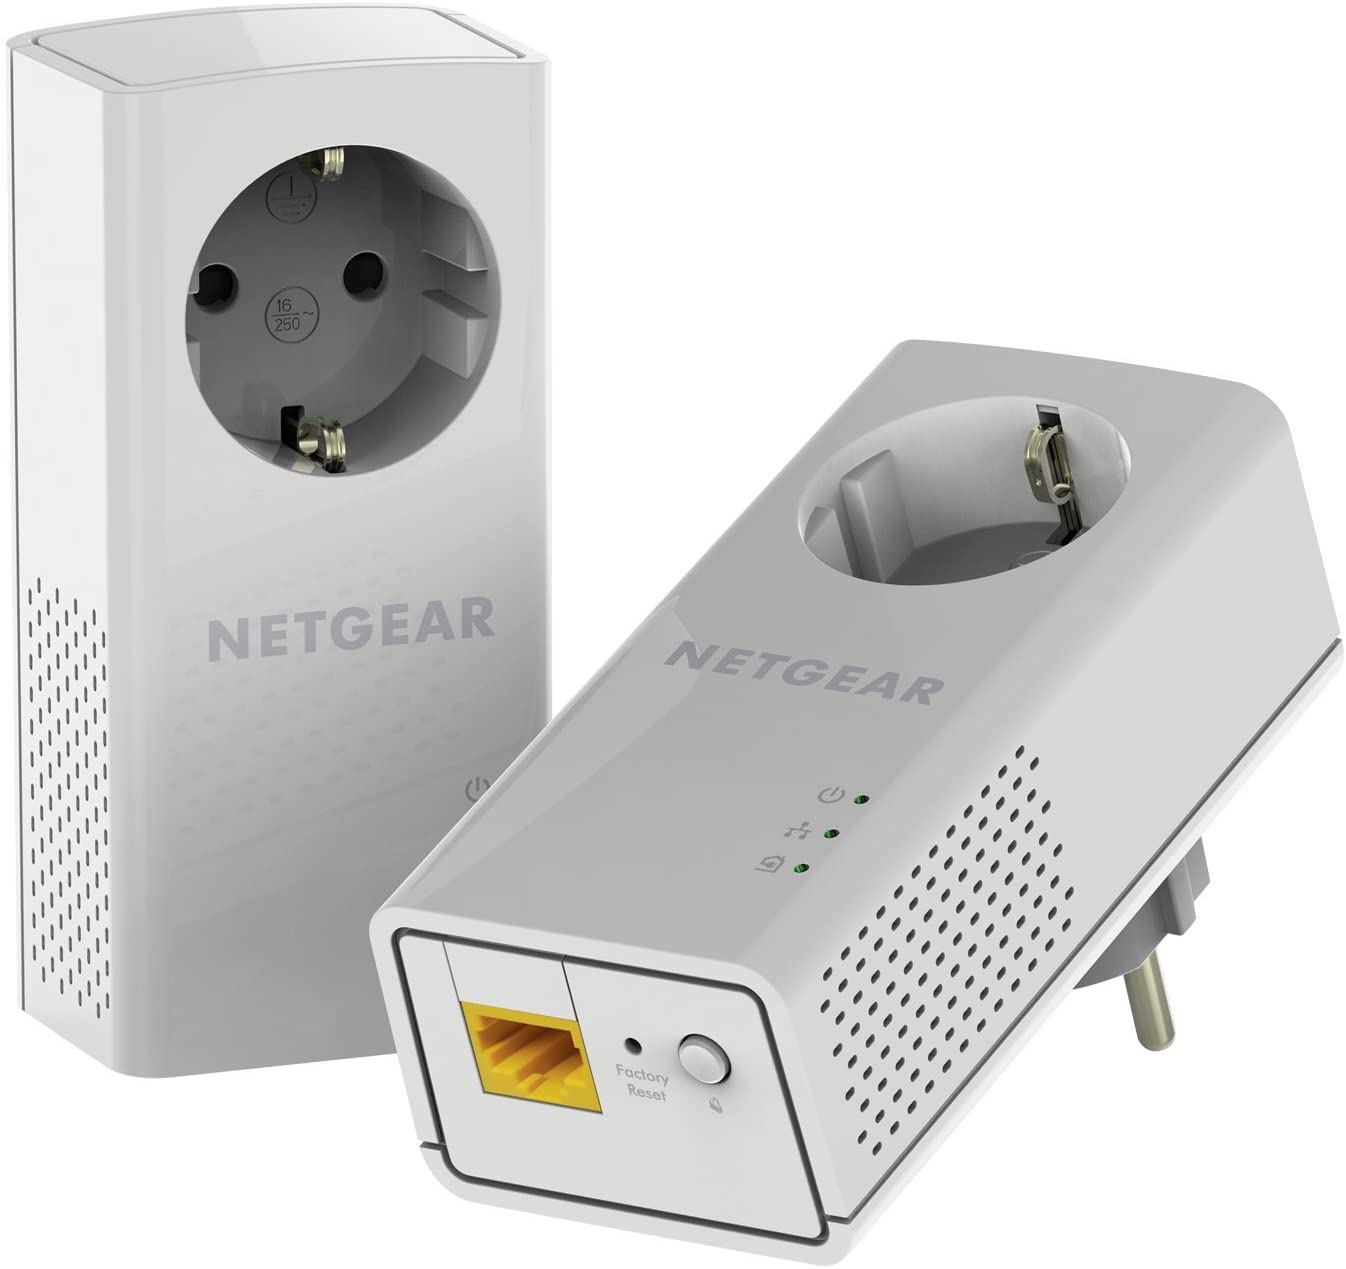 Netgear PLP1200-100PES - Kit de adaptadores Powerline (1200 Mbps, 1 Puerto Ethernet Gigabit, Toma de Enchufe integrada), Blanco